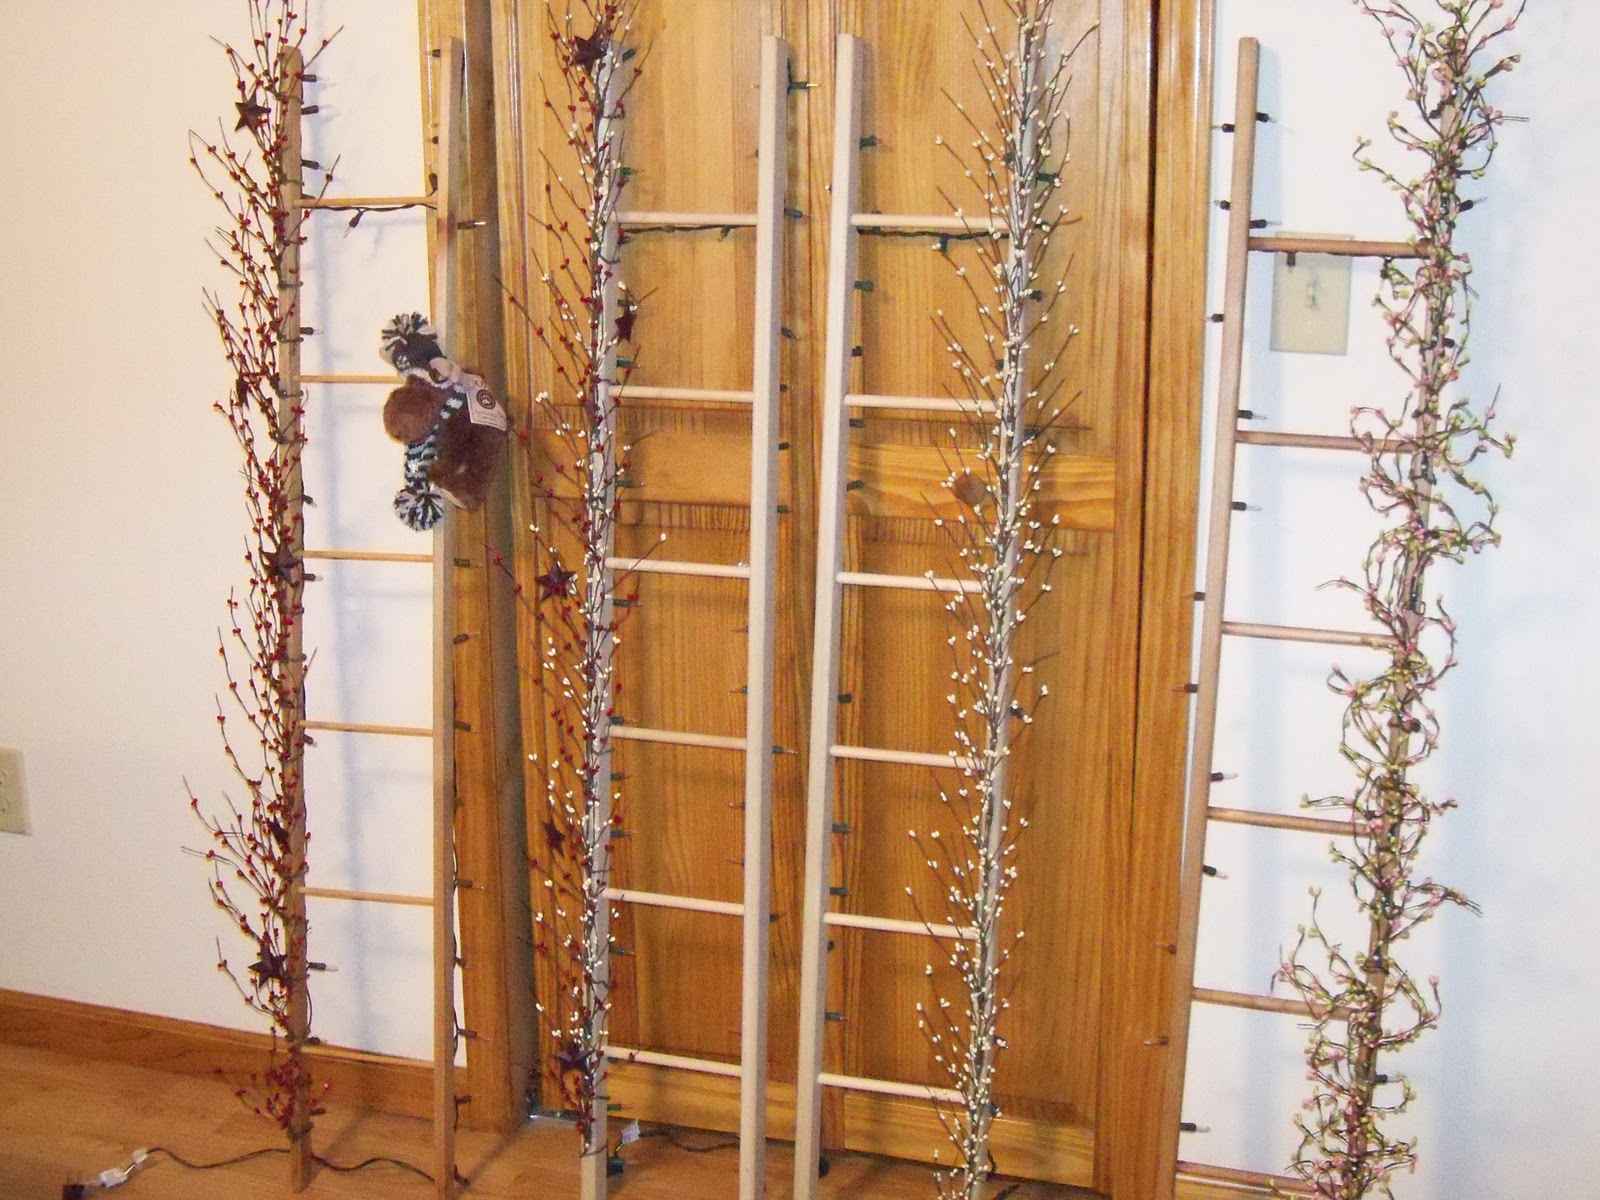 Rustic Crafts and Creations: Decorative Prim Ladders